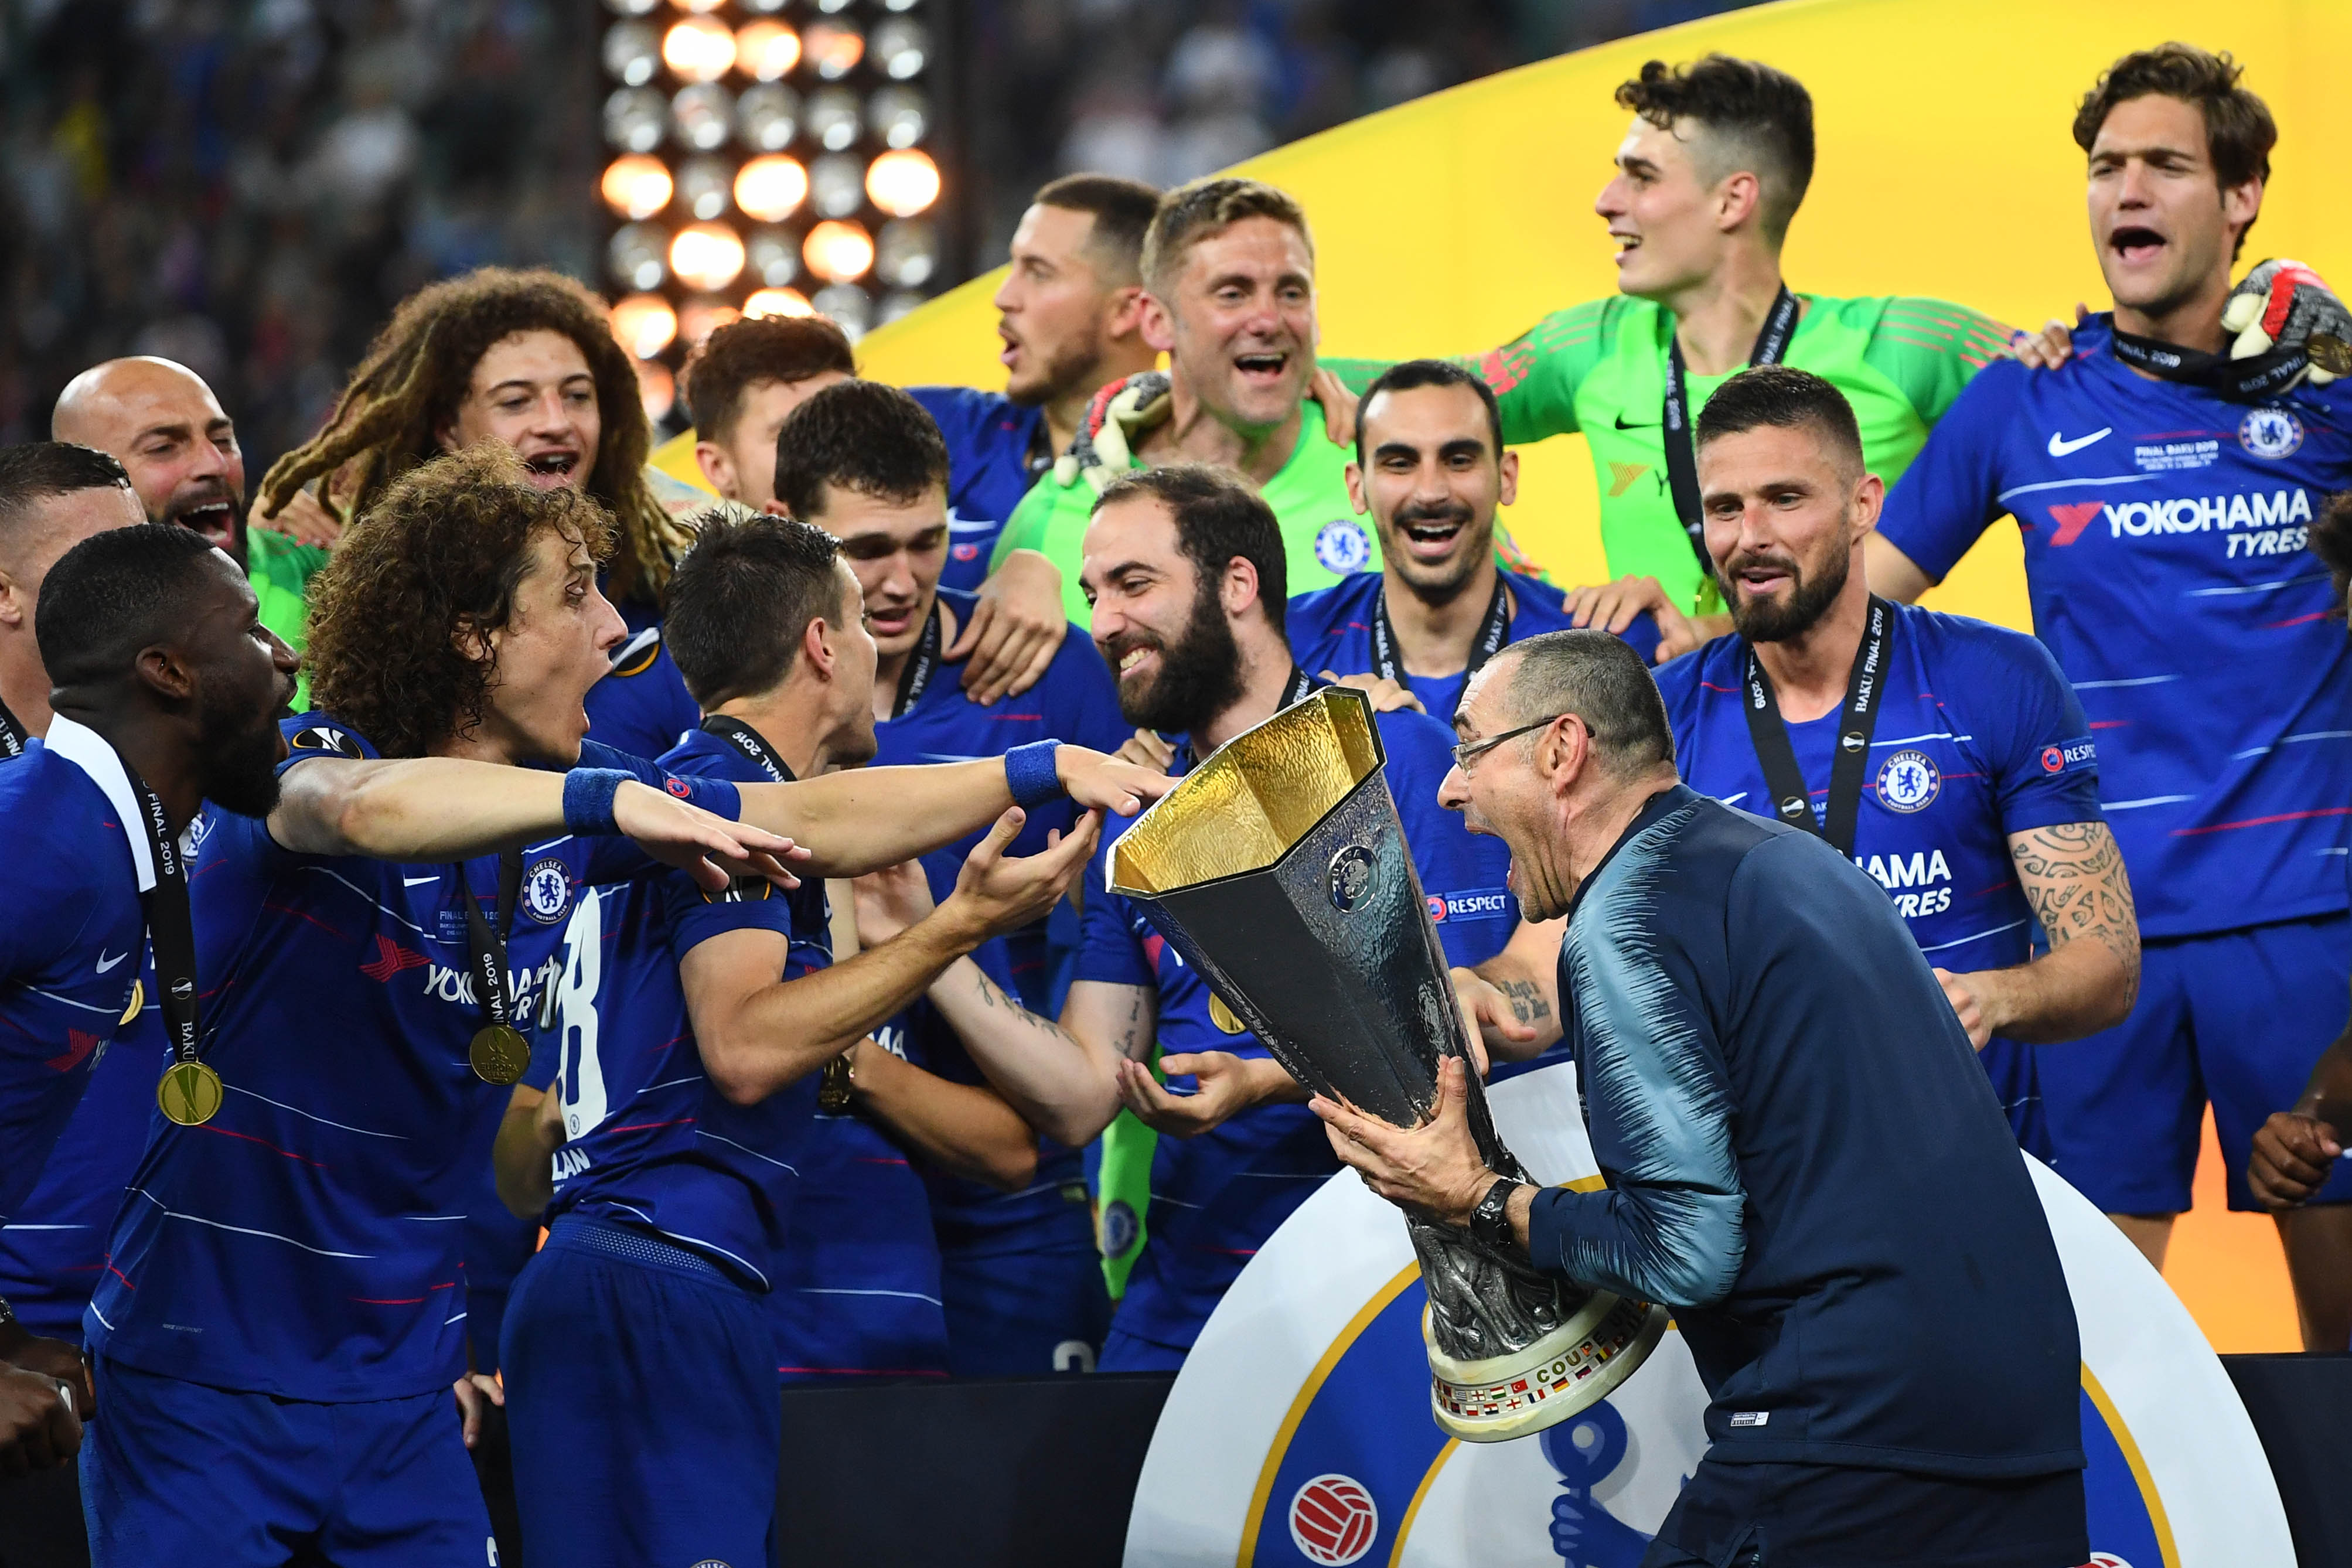 Sarri salutes 'courageous' second half response to win it for 'the front of the shirt'